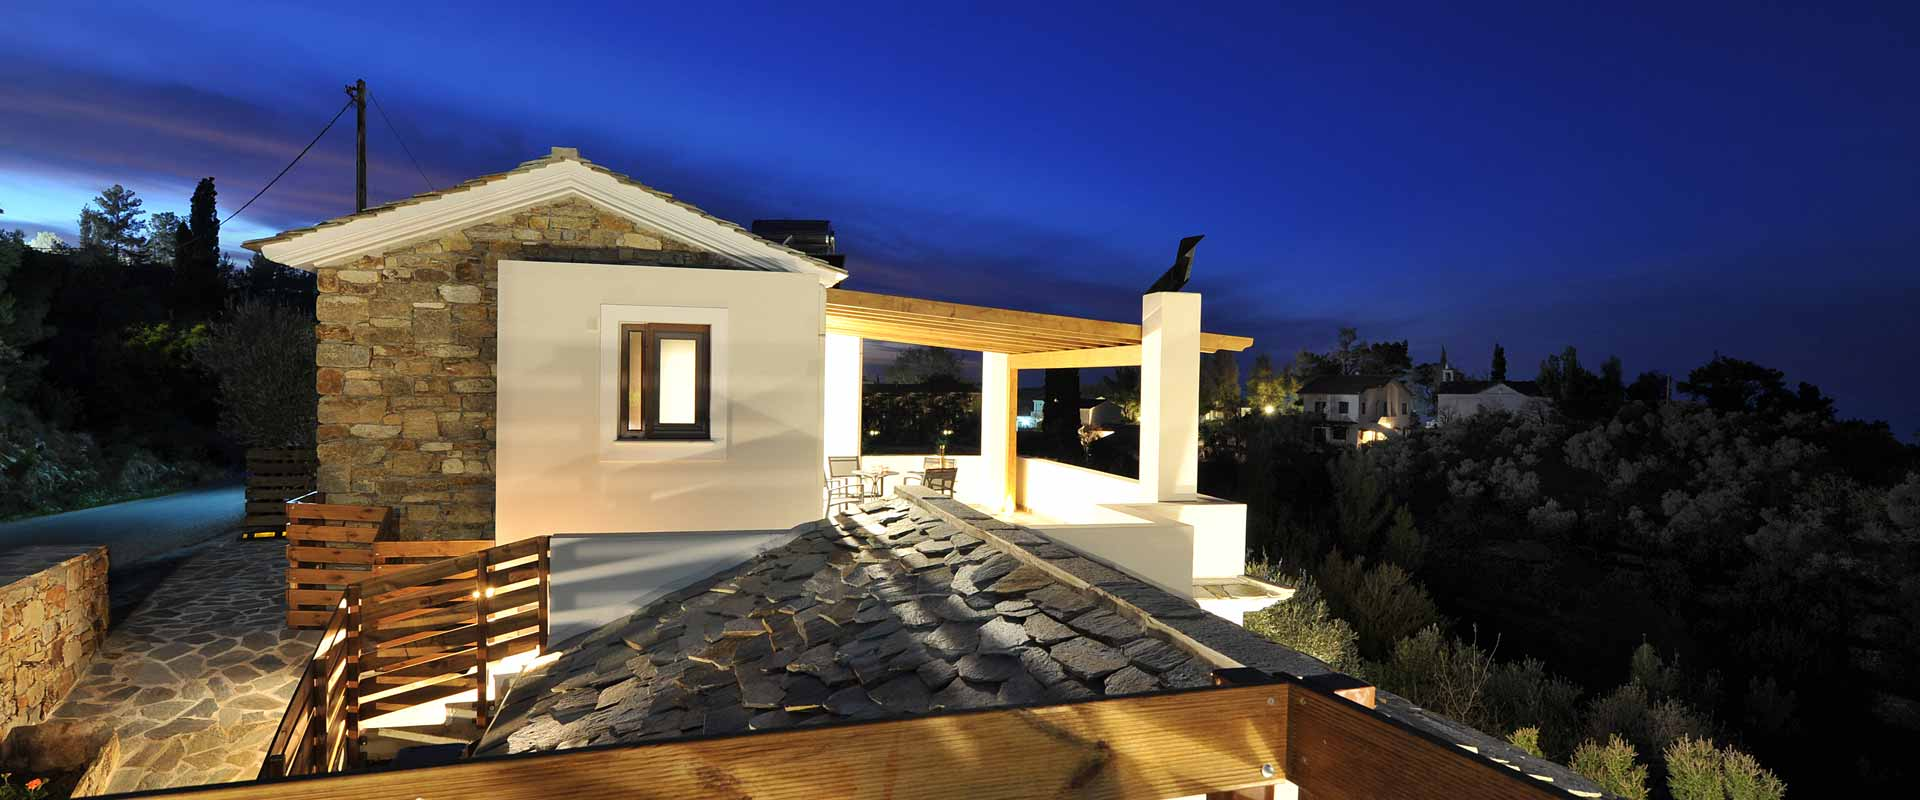 ikaria olivia villas night bulding view photo